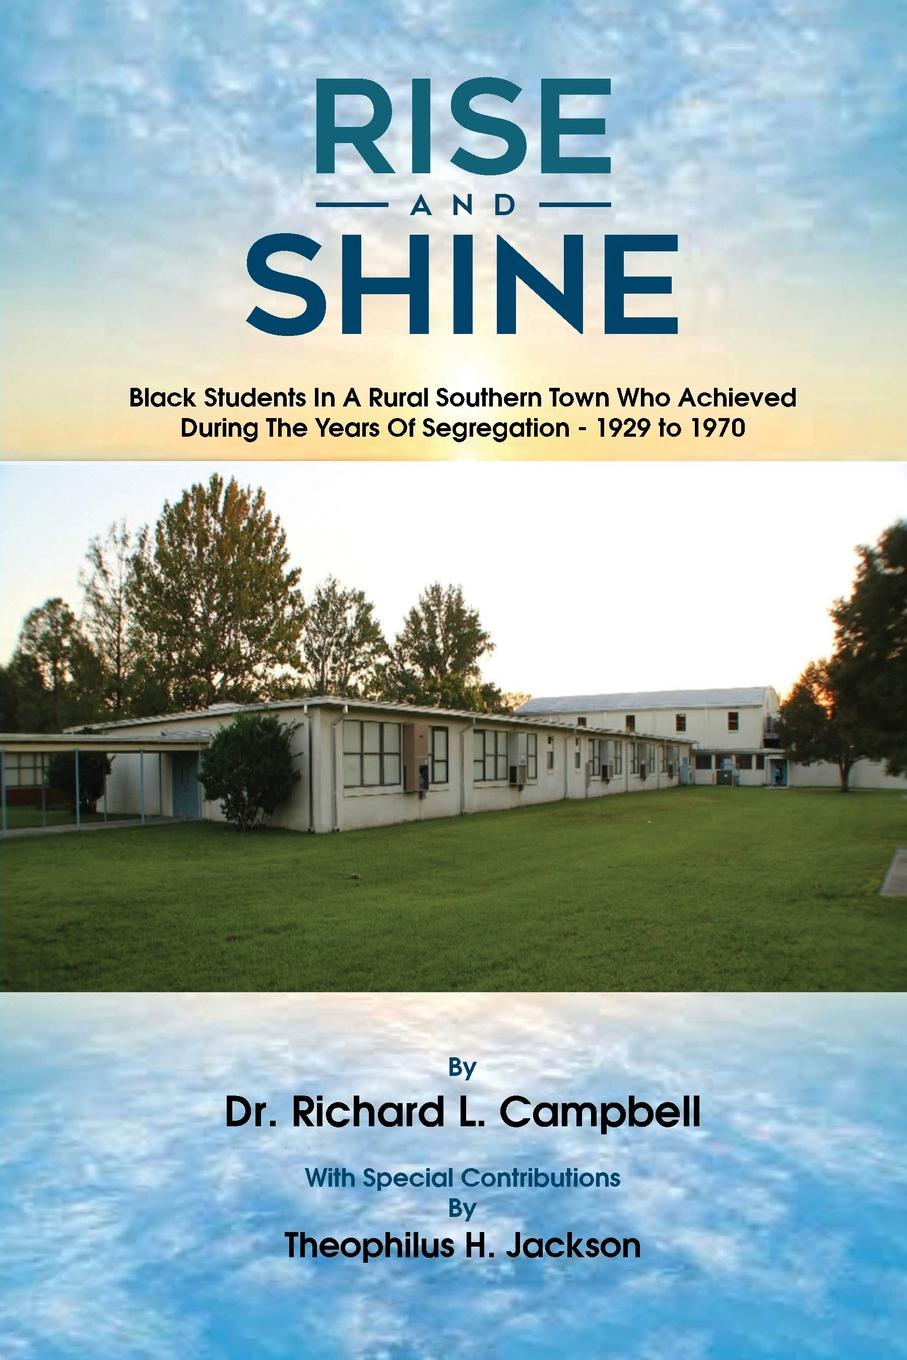 Rise And Shine. Black Students In A Rural Southern Town Who Achieved During The Years Of Segregation - 1929 to 1970. Dr. Richard L. Campbell